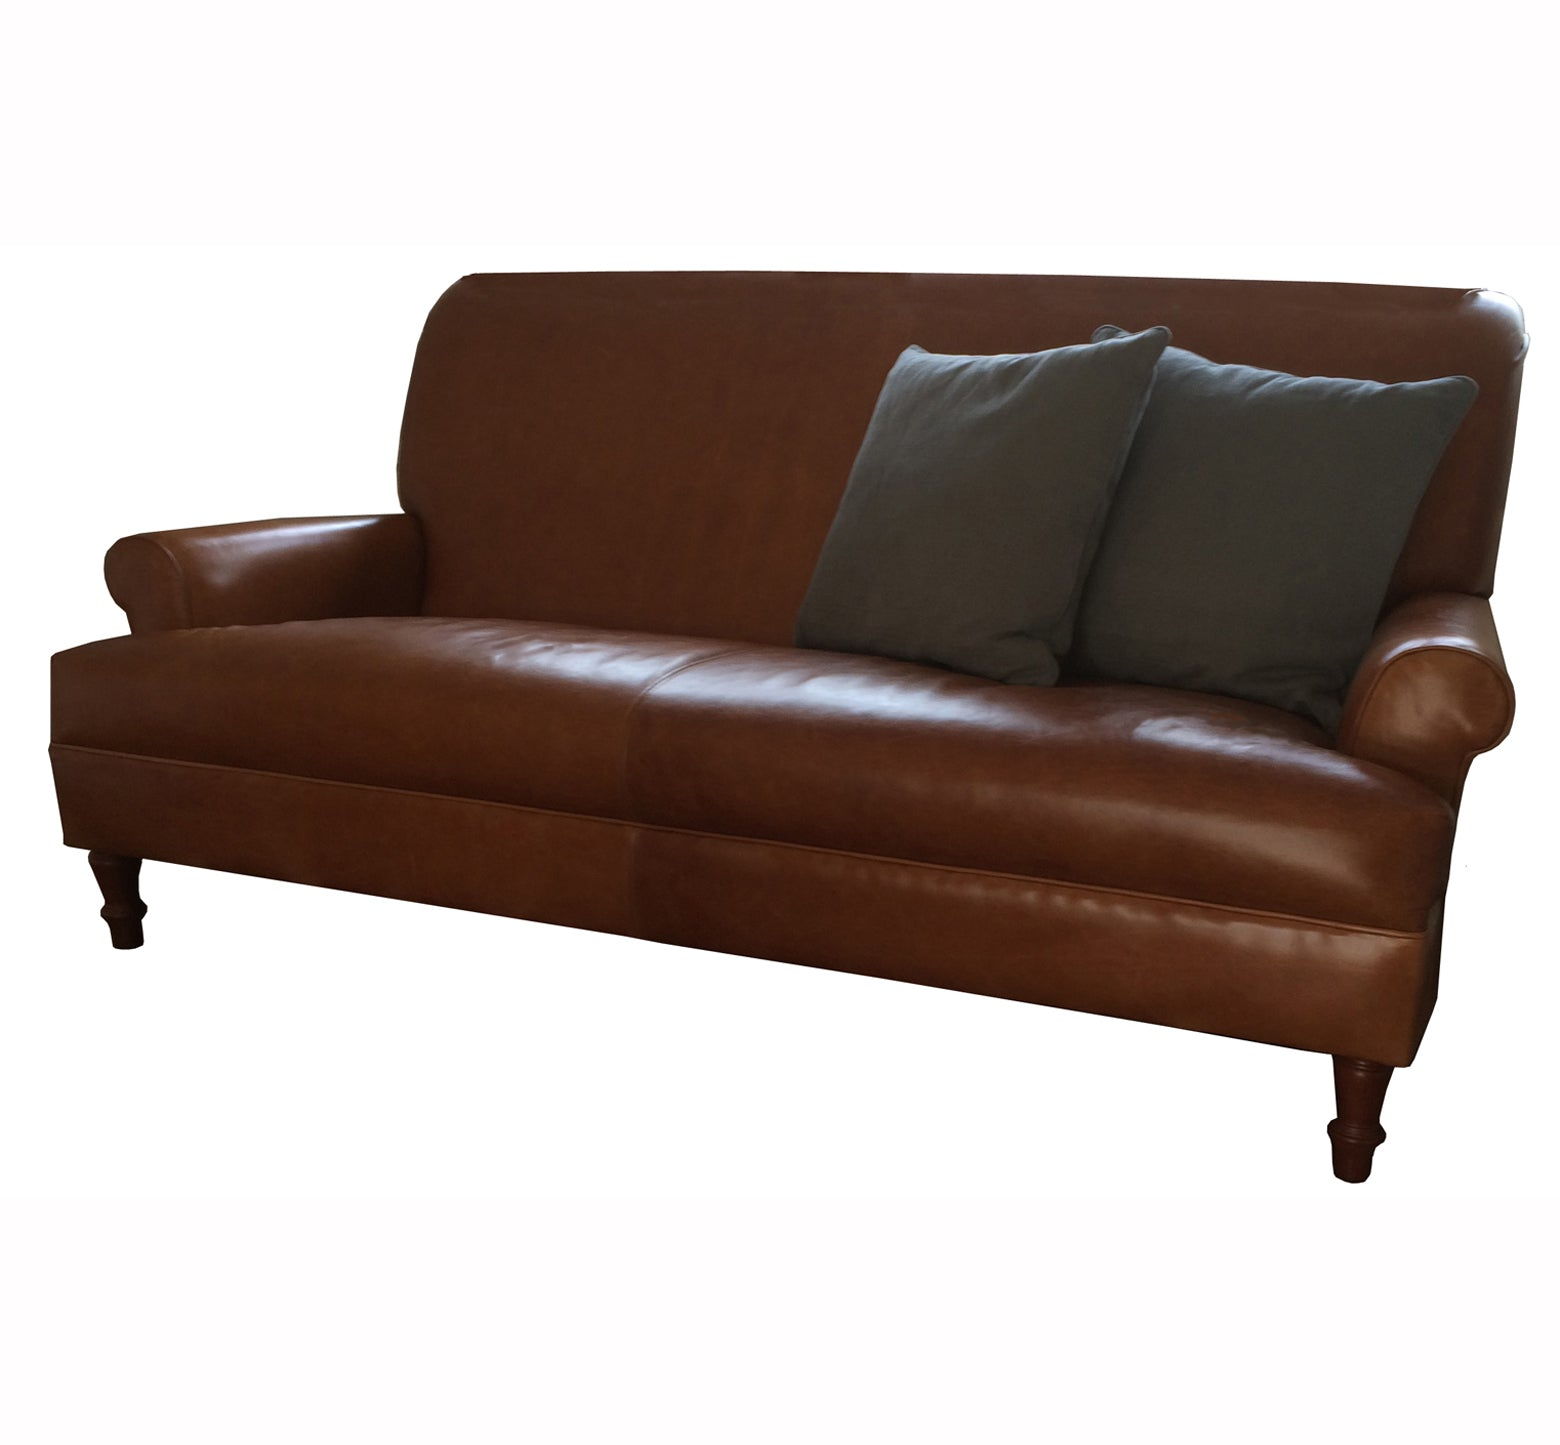 York Sofas And Chairs In Linwood Club HALF PRICE TO ORDER